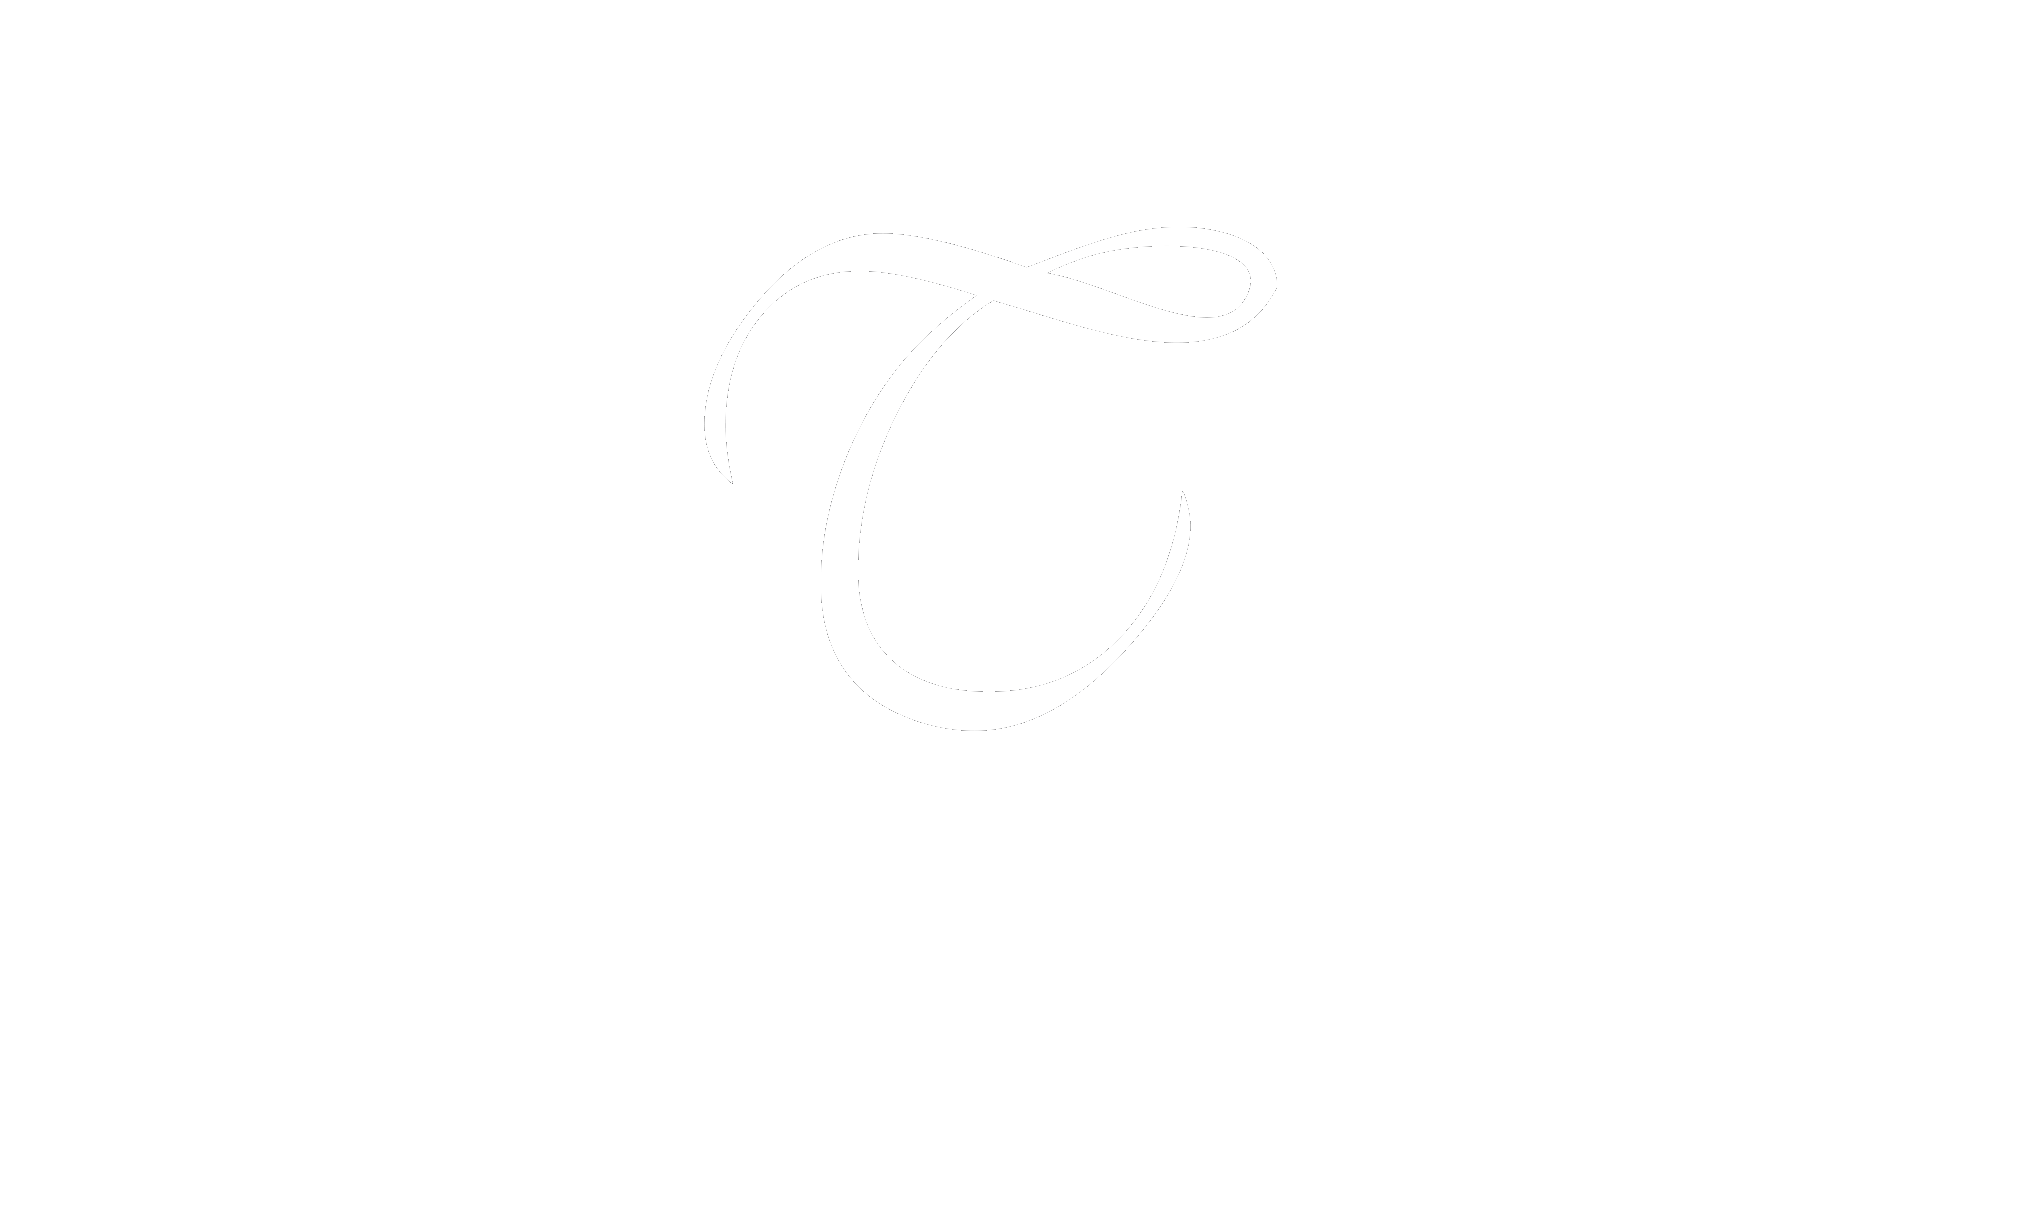 Top Notch Logo_Original copy white.png